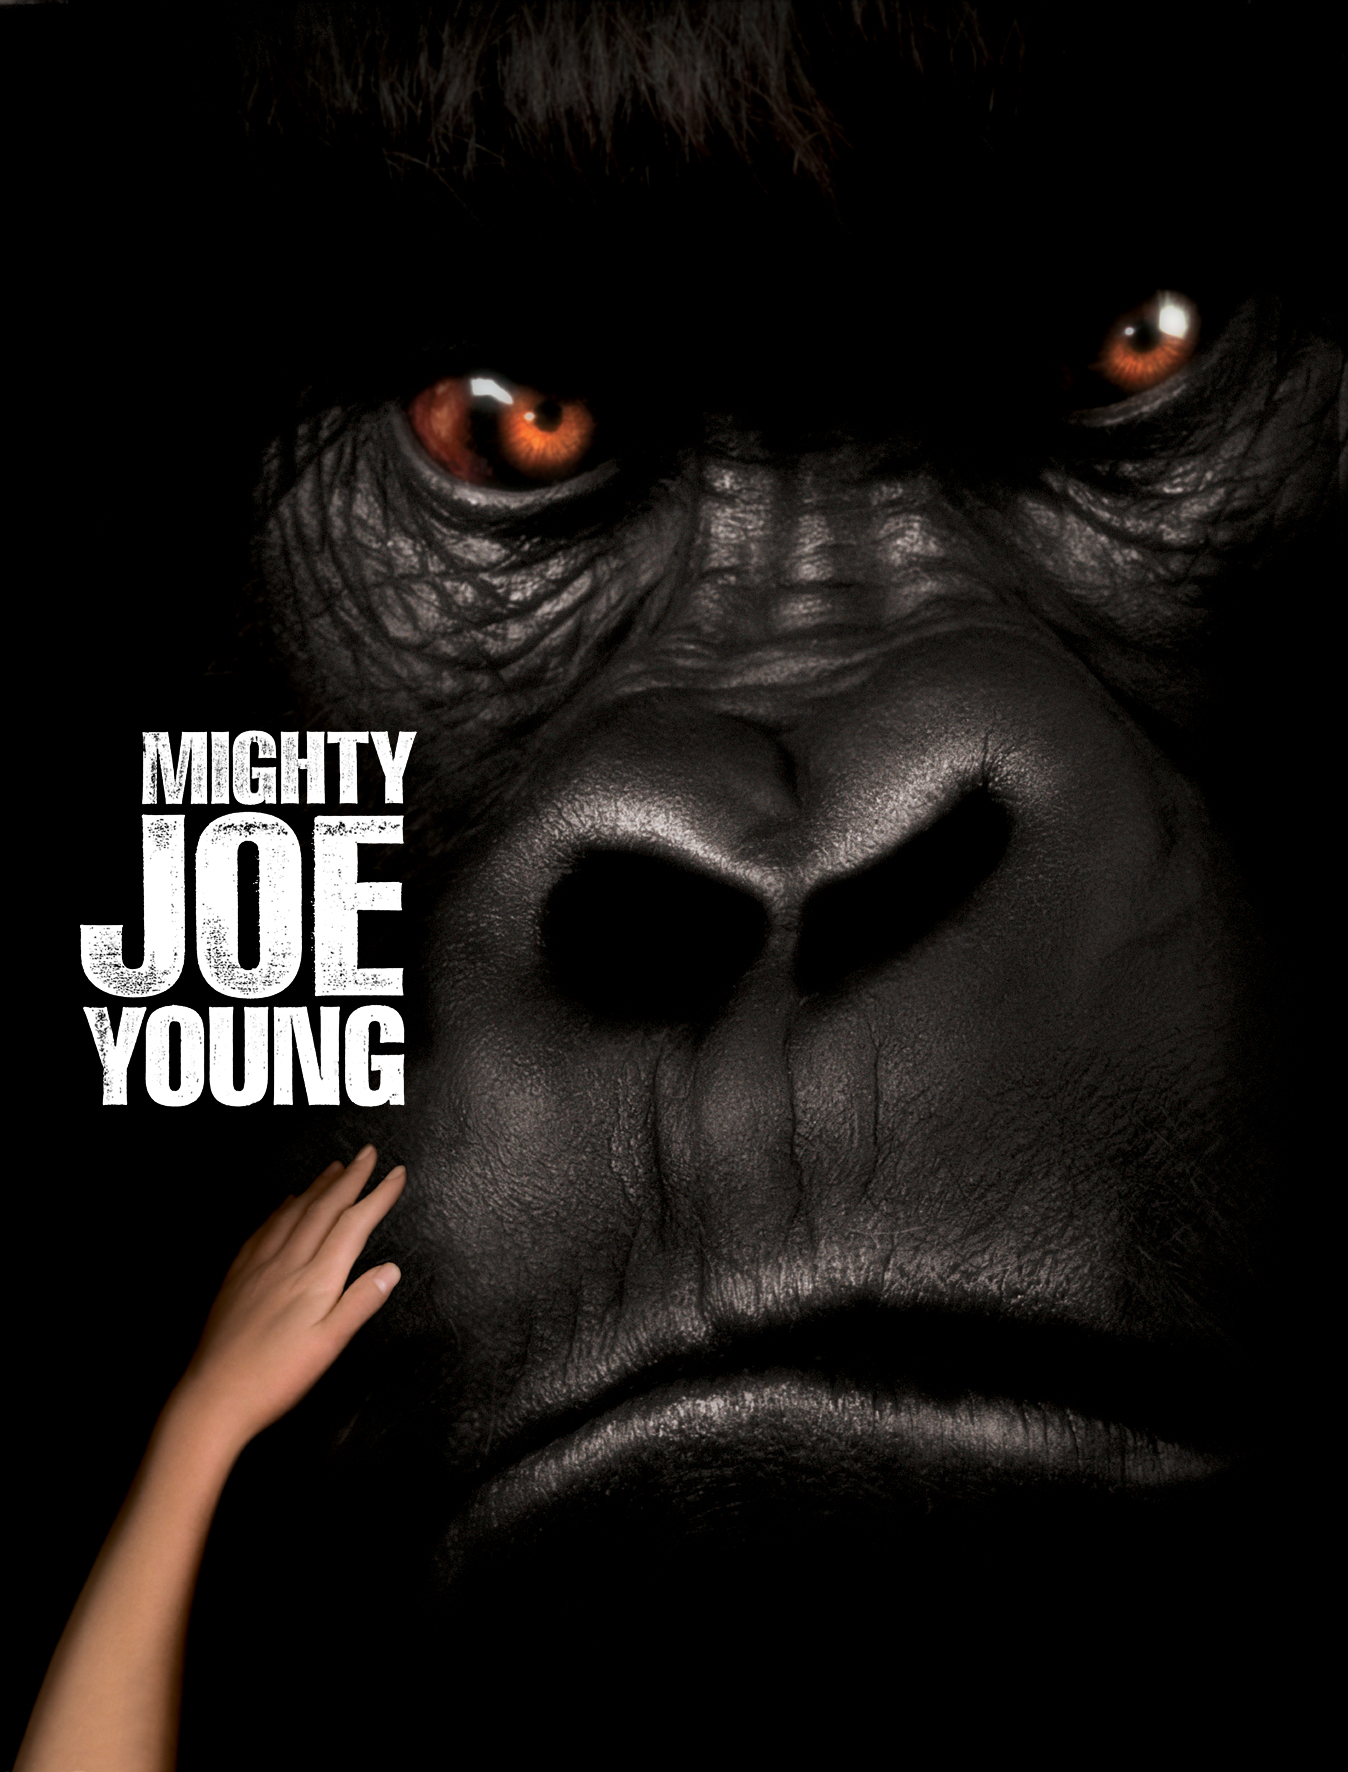 Deneb does Mighty Joe Young   Mutant Reviewers  Mighty Joe Young